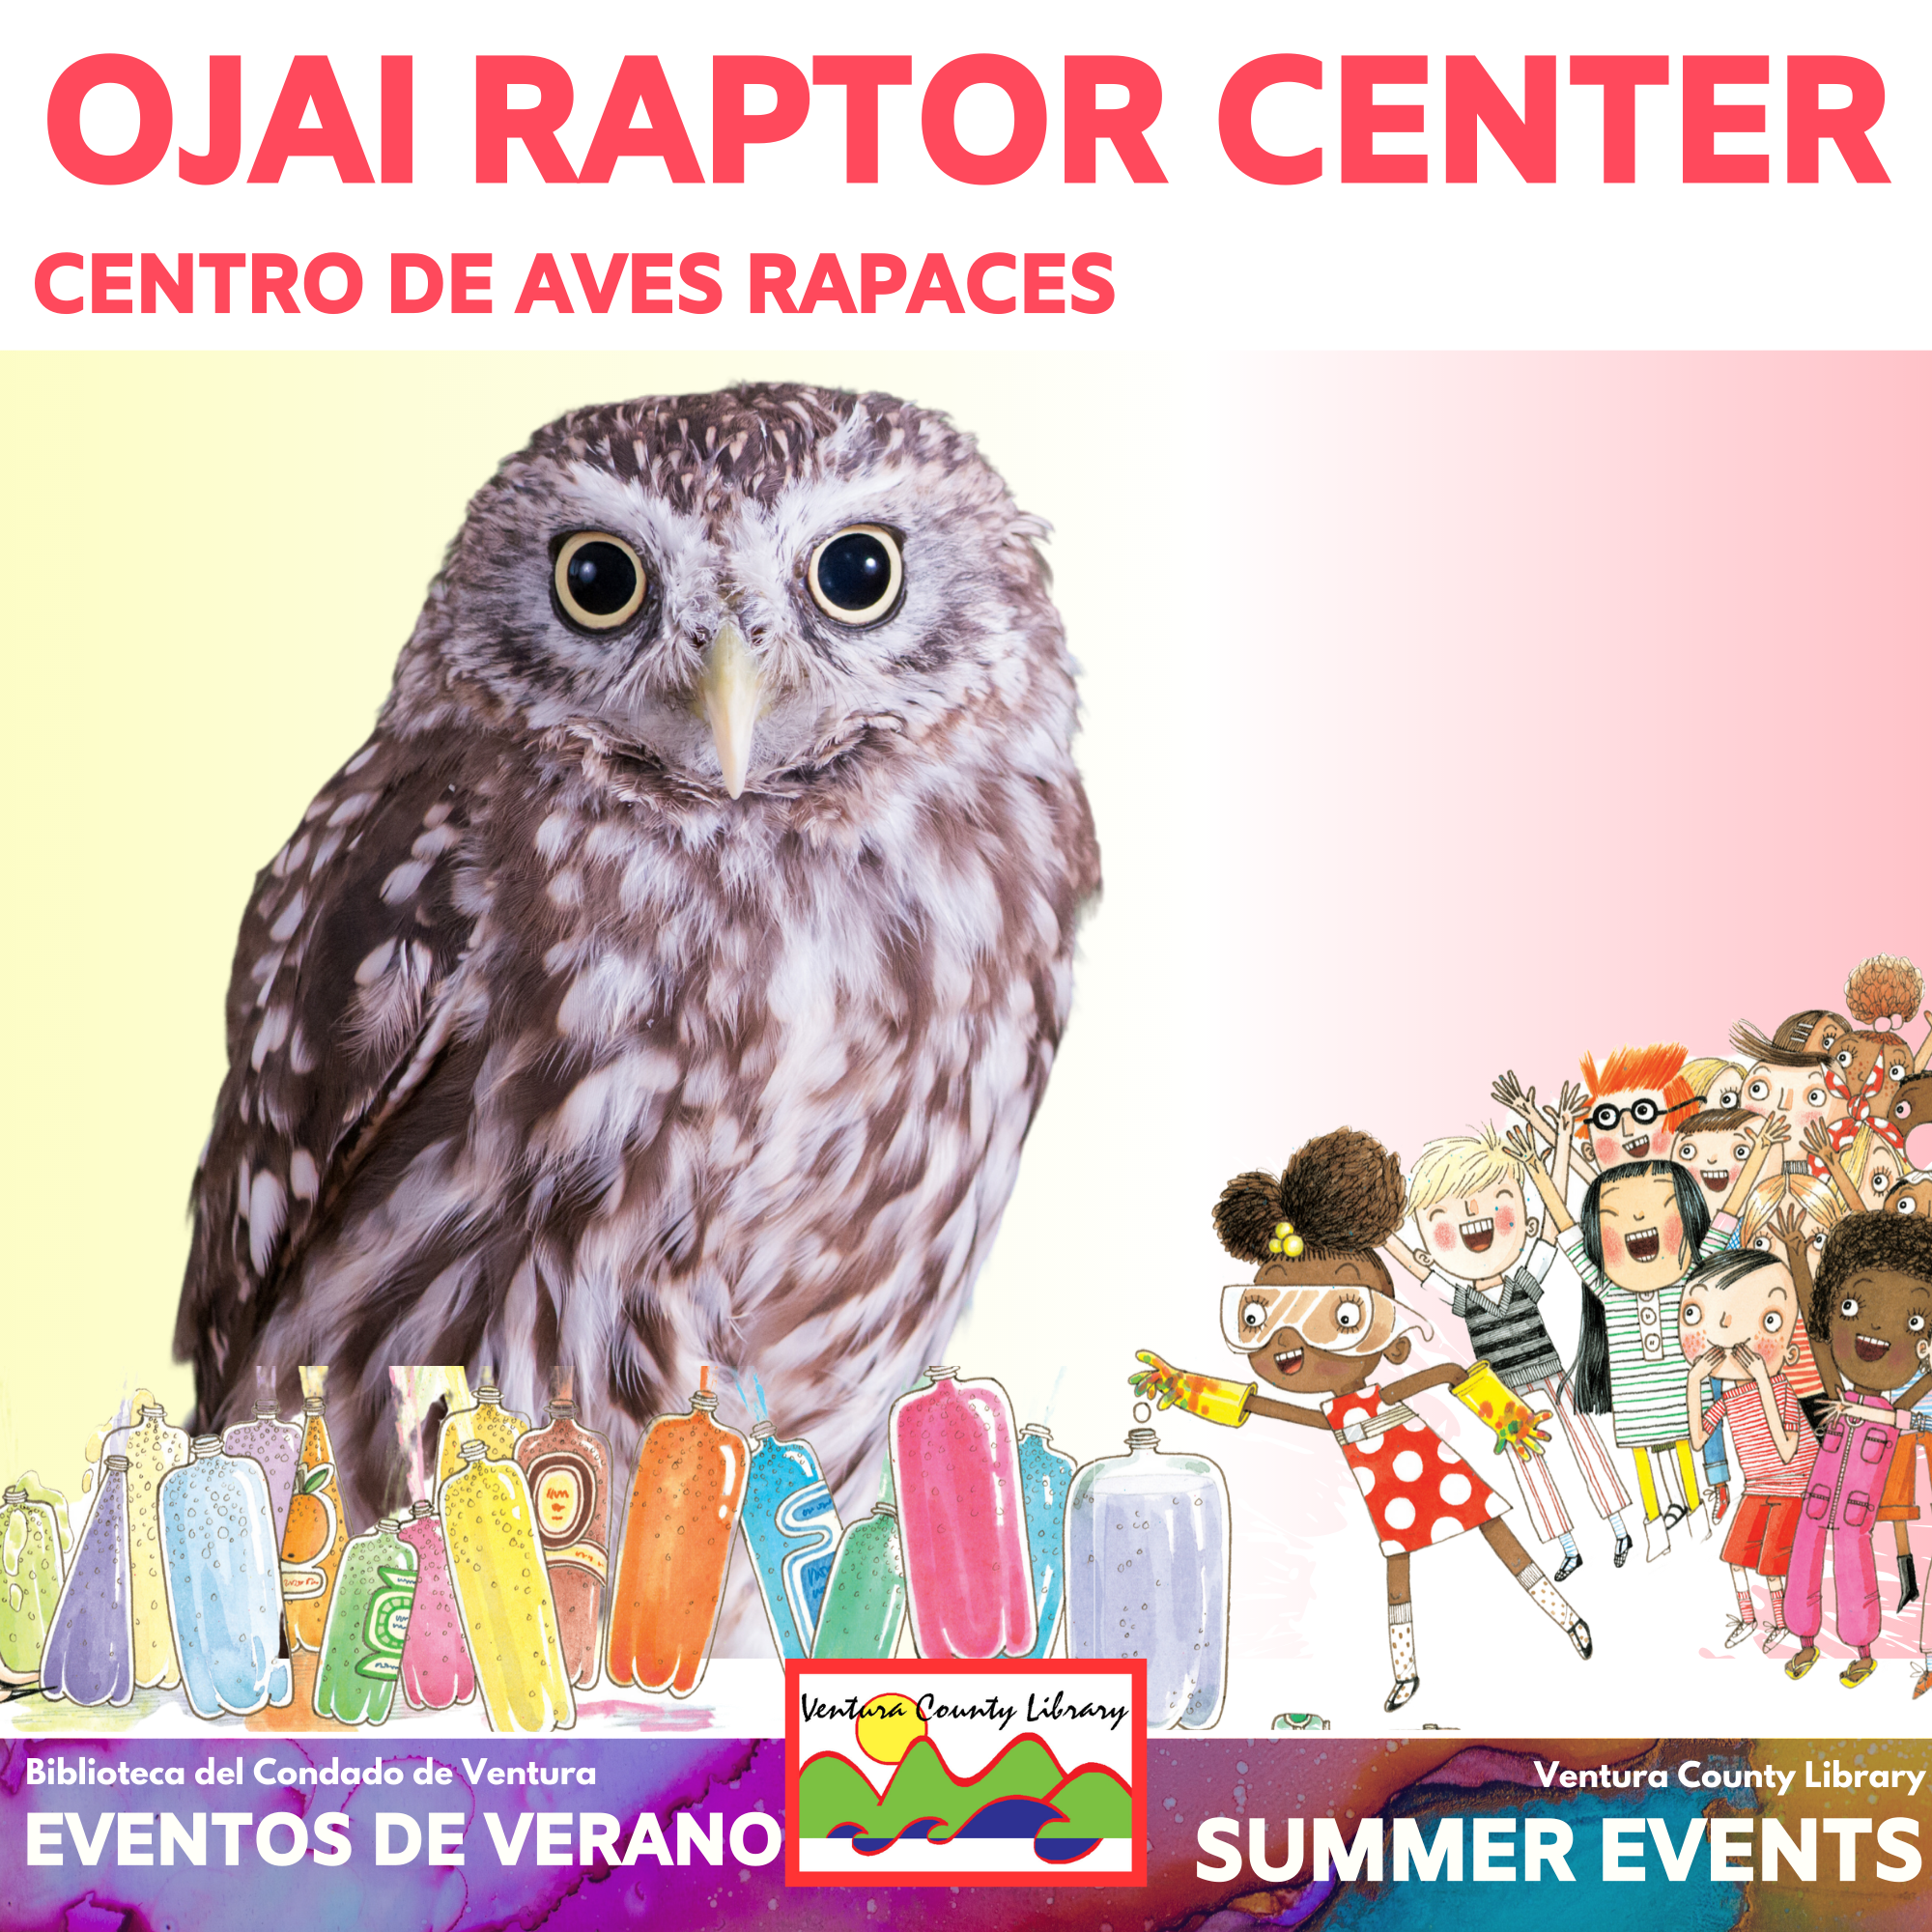 photo of owl with graphics of schoolchildren performing a science experiment. Text reads Ojai Raptor Center: Centro de aves rapaces